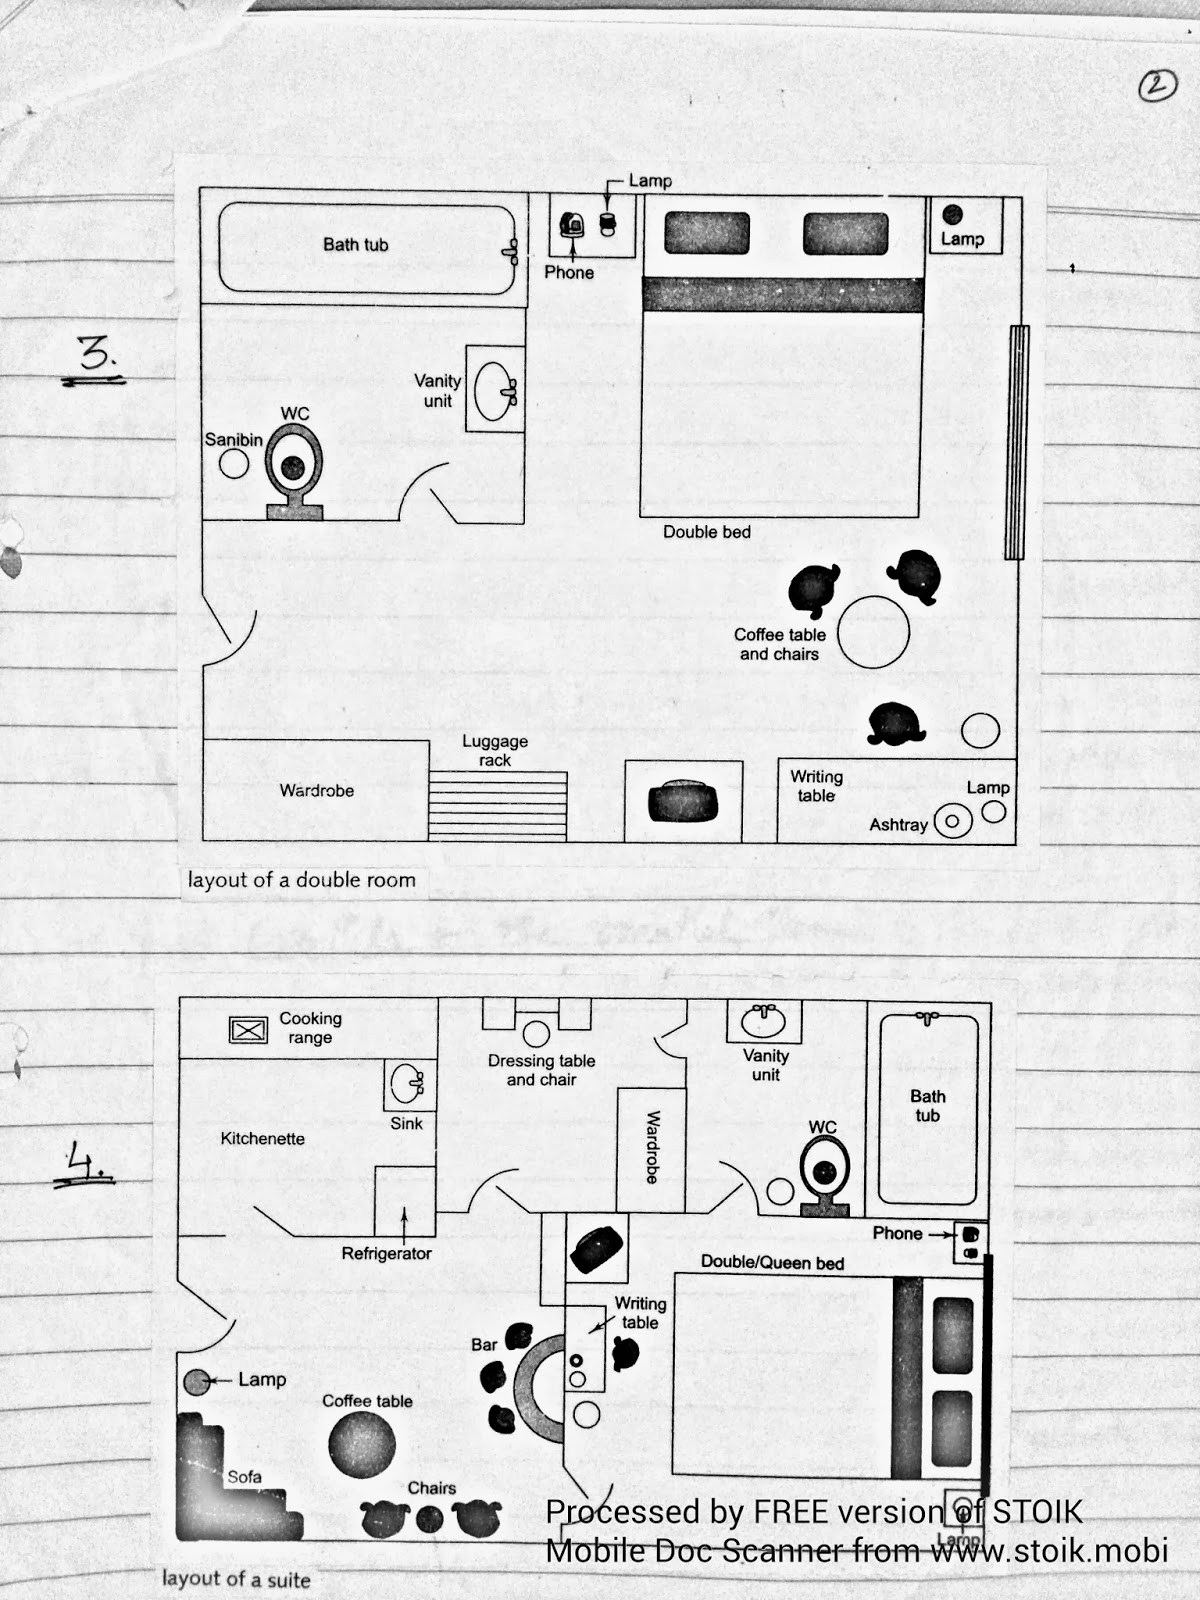 House Keeping Notes  Room Layout And Guest Supplies